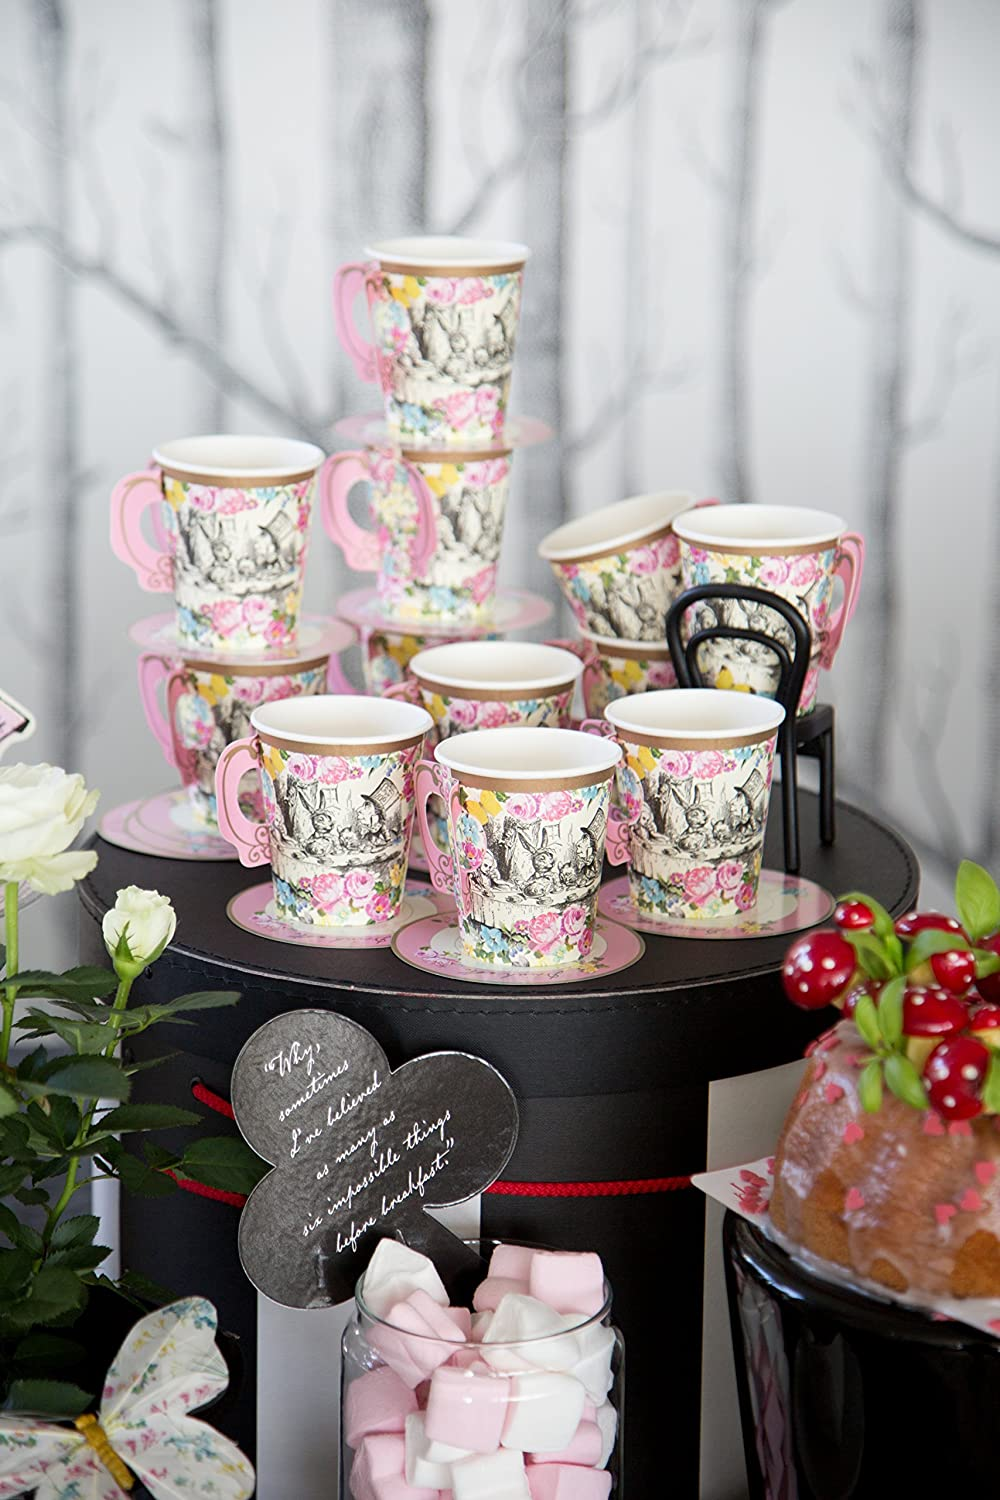 12 Pack TSALICE-CUPSET Great For Mad Hatter Tea Party Paper Talking Tables Alice In Wonderland Party Supplies Tea Cups And Saucer Sets Birthday Party And Baby Shower